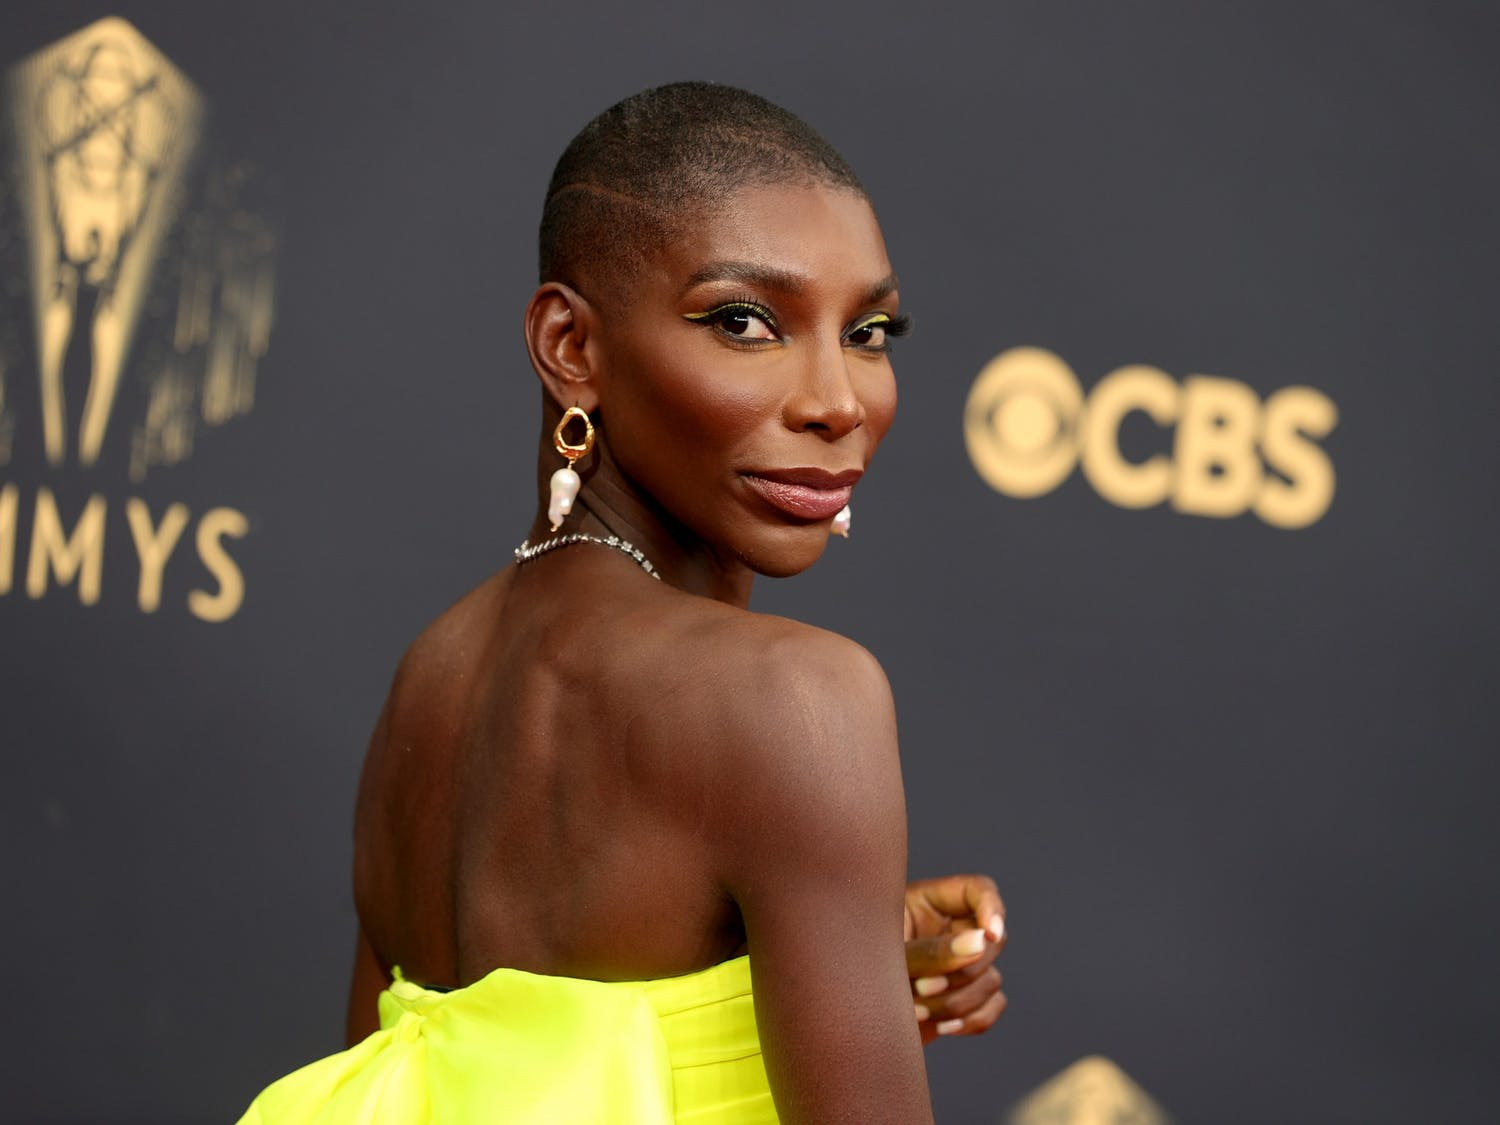 Michaela Coel attends the 73rd Primetime Emmy Awards at L.A. LIVE on Sunday, September 19, 2021, in Los Angeles. Photo courtesy of Rich Fury/Getty Images/TNS.